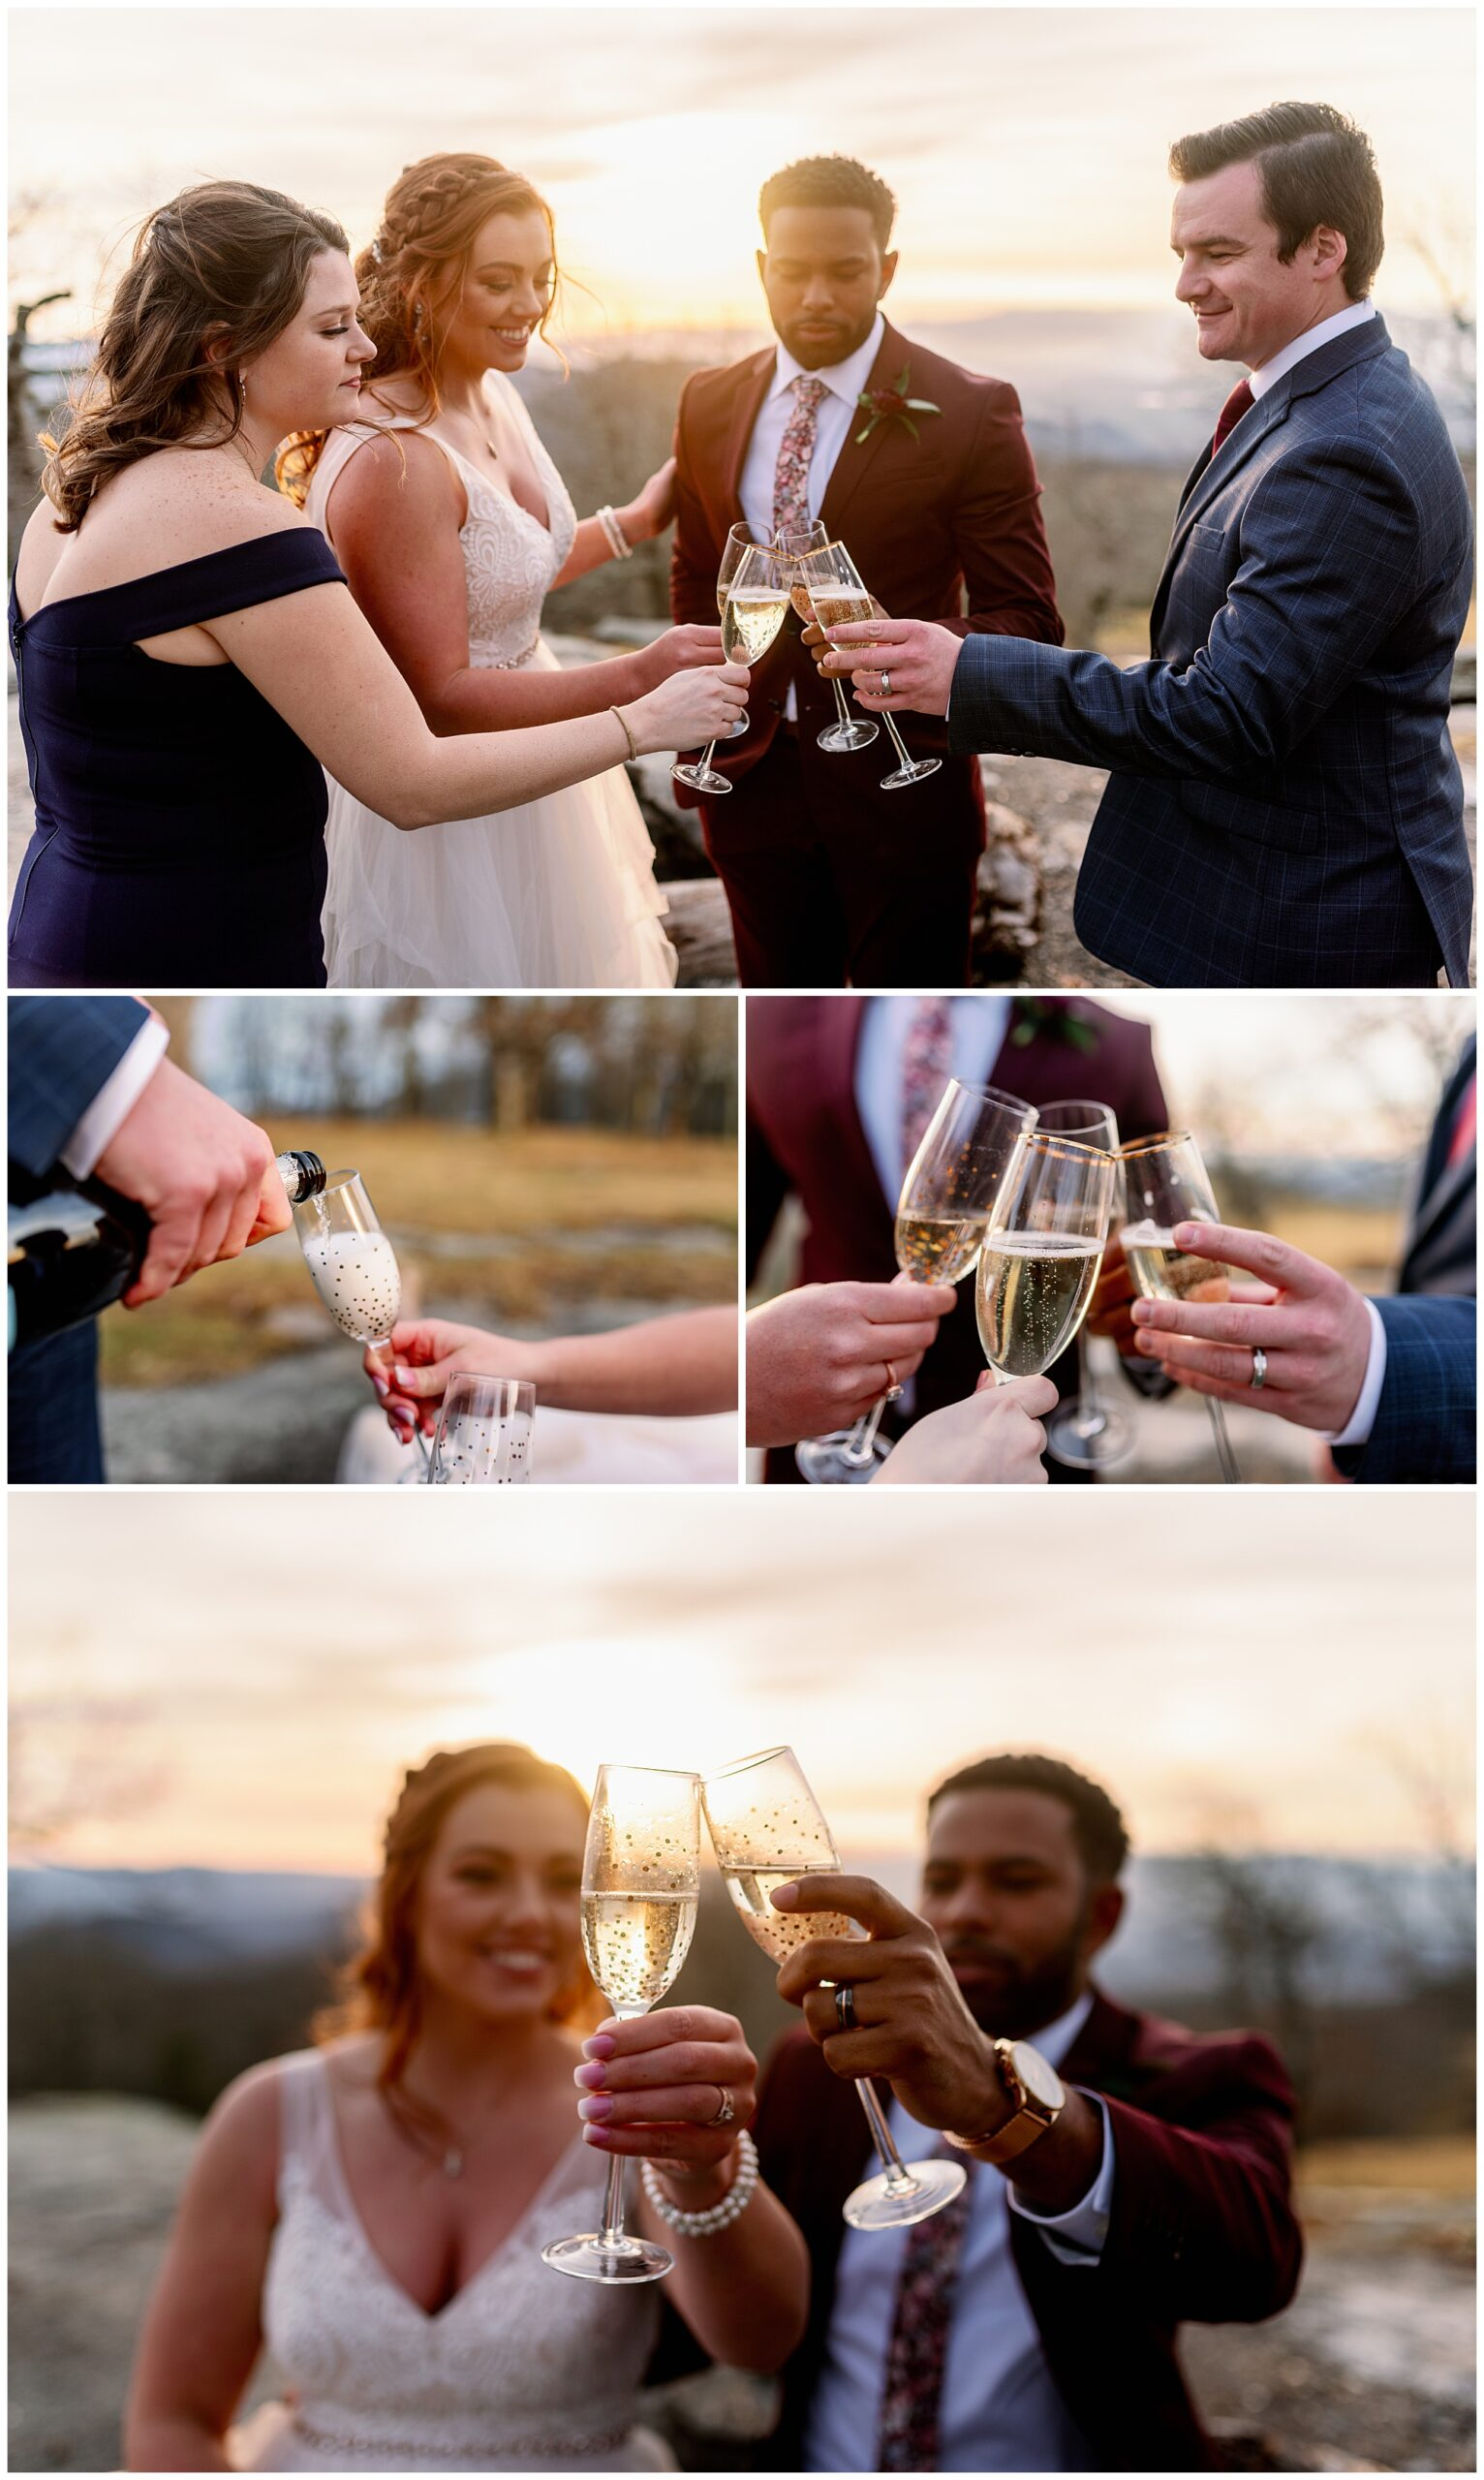 sharing champagne with their witnesses to celebrate their marriage